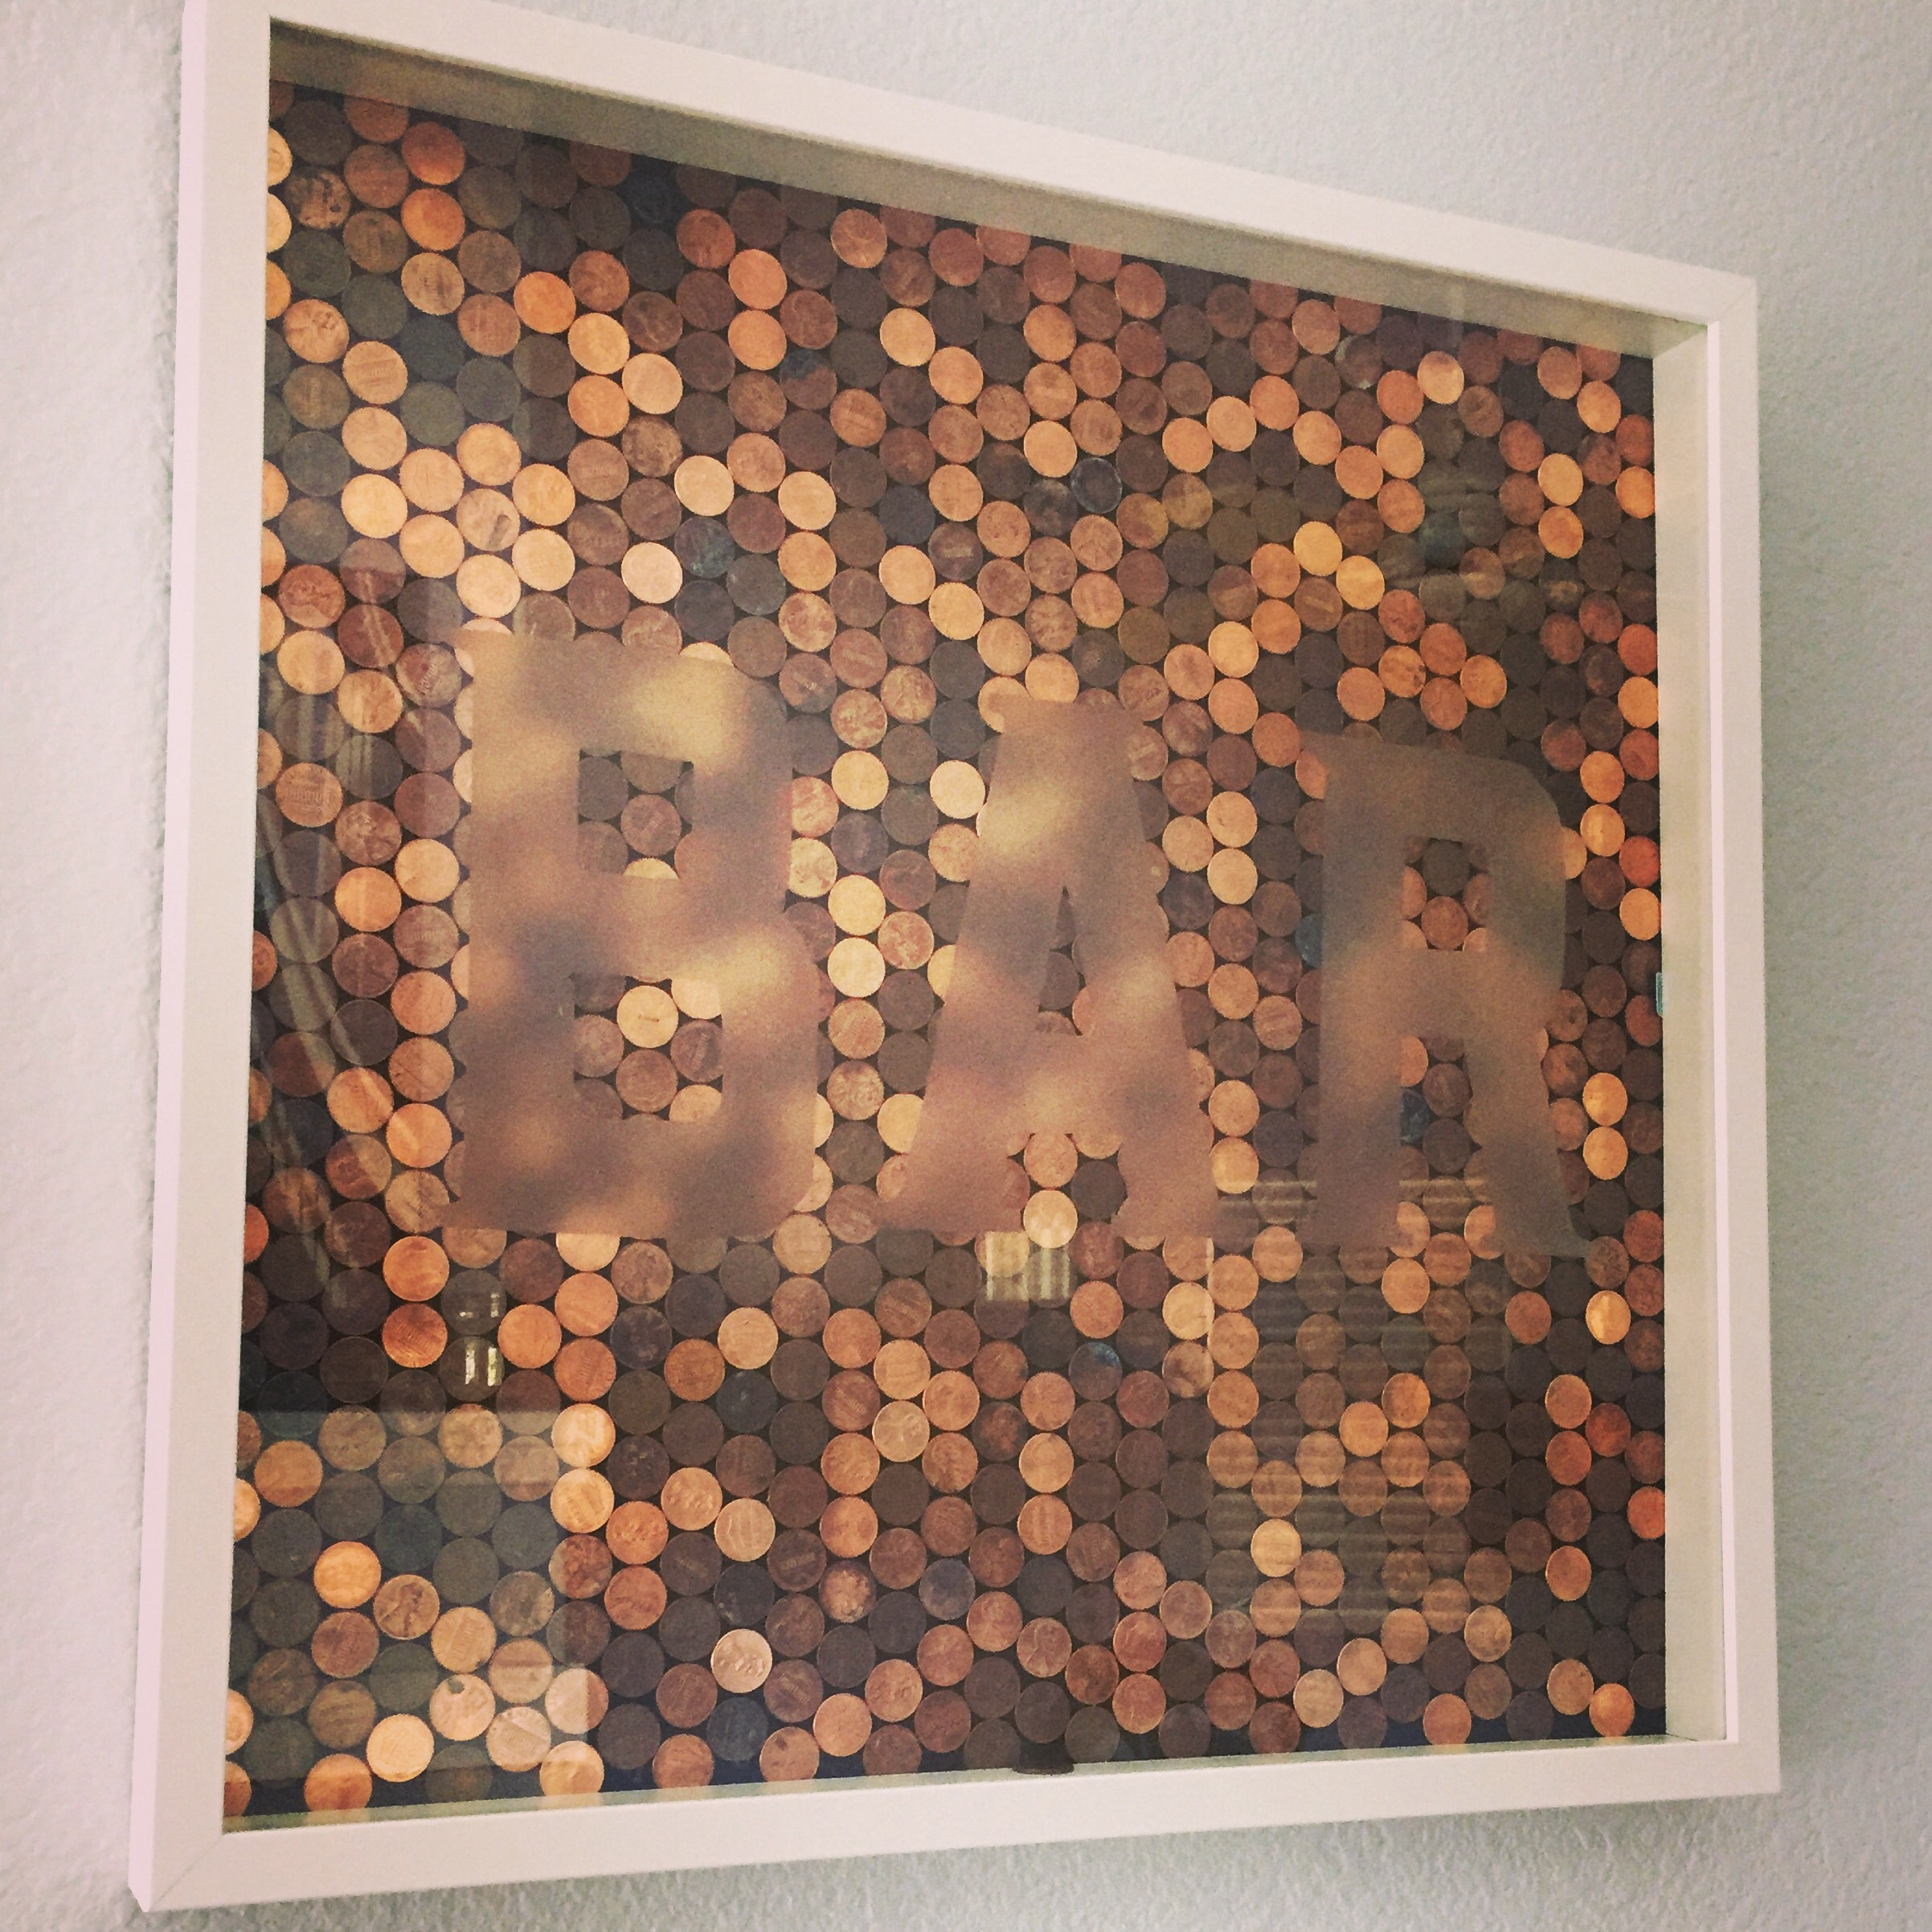 Etched Bar Wall Decor - Darby Smart